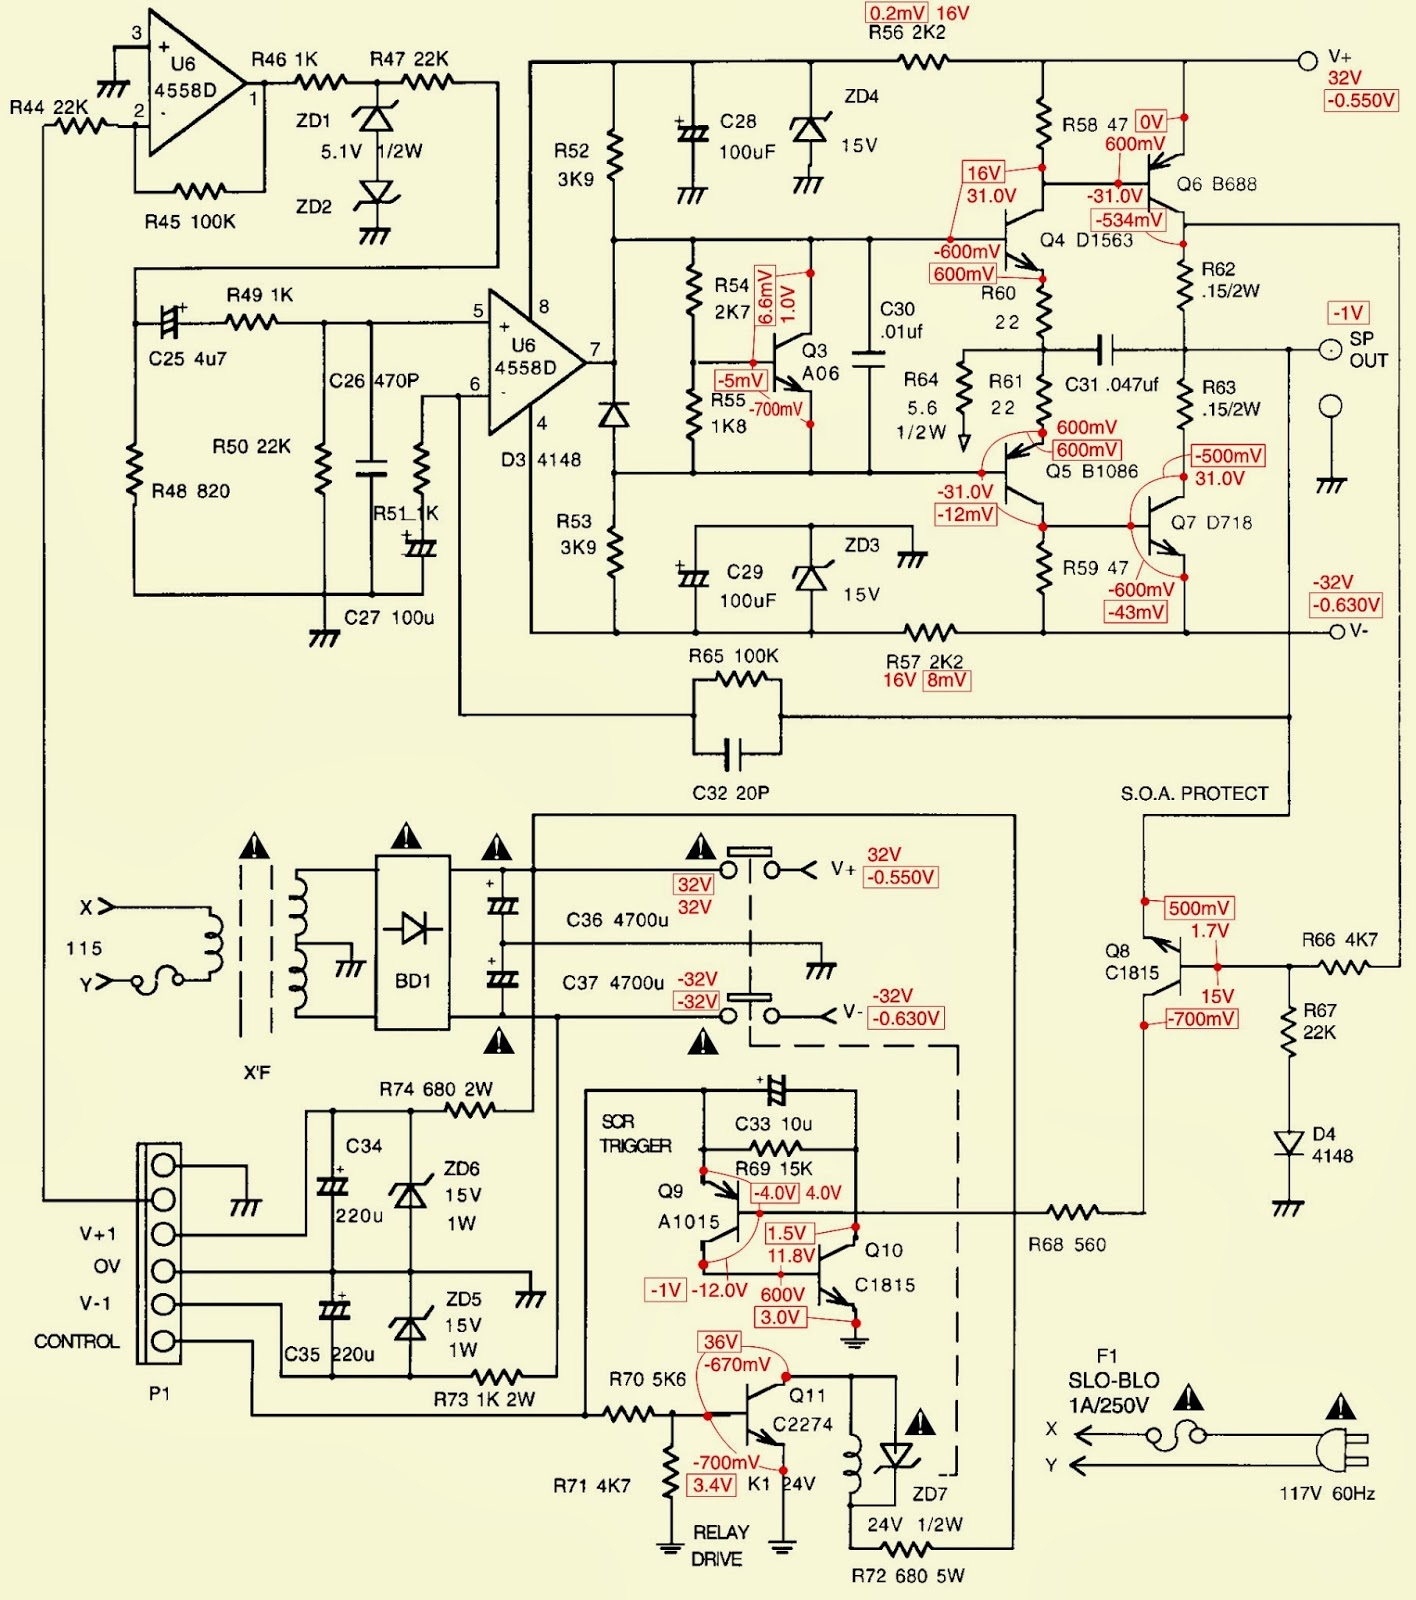 hight resolution of jbl arc sub test procedure schematic diagram circuit diagram jbl powered subwoofer schematic diagram